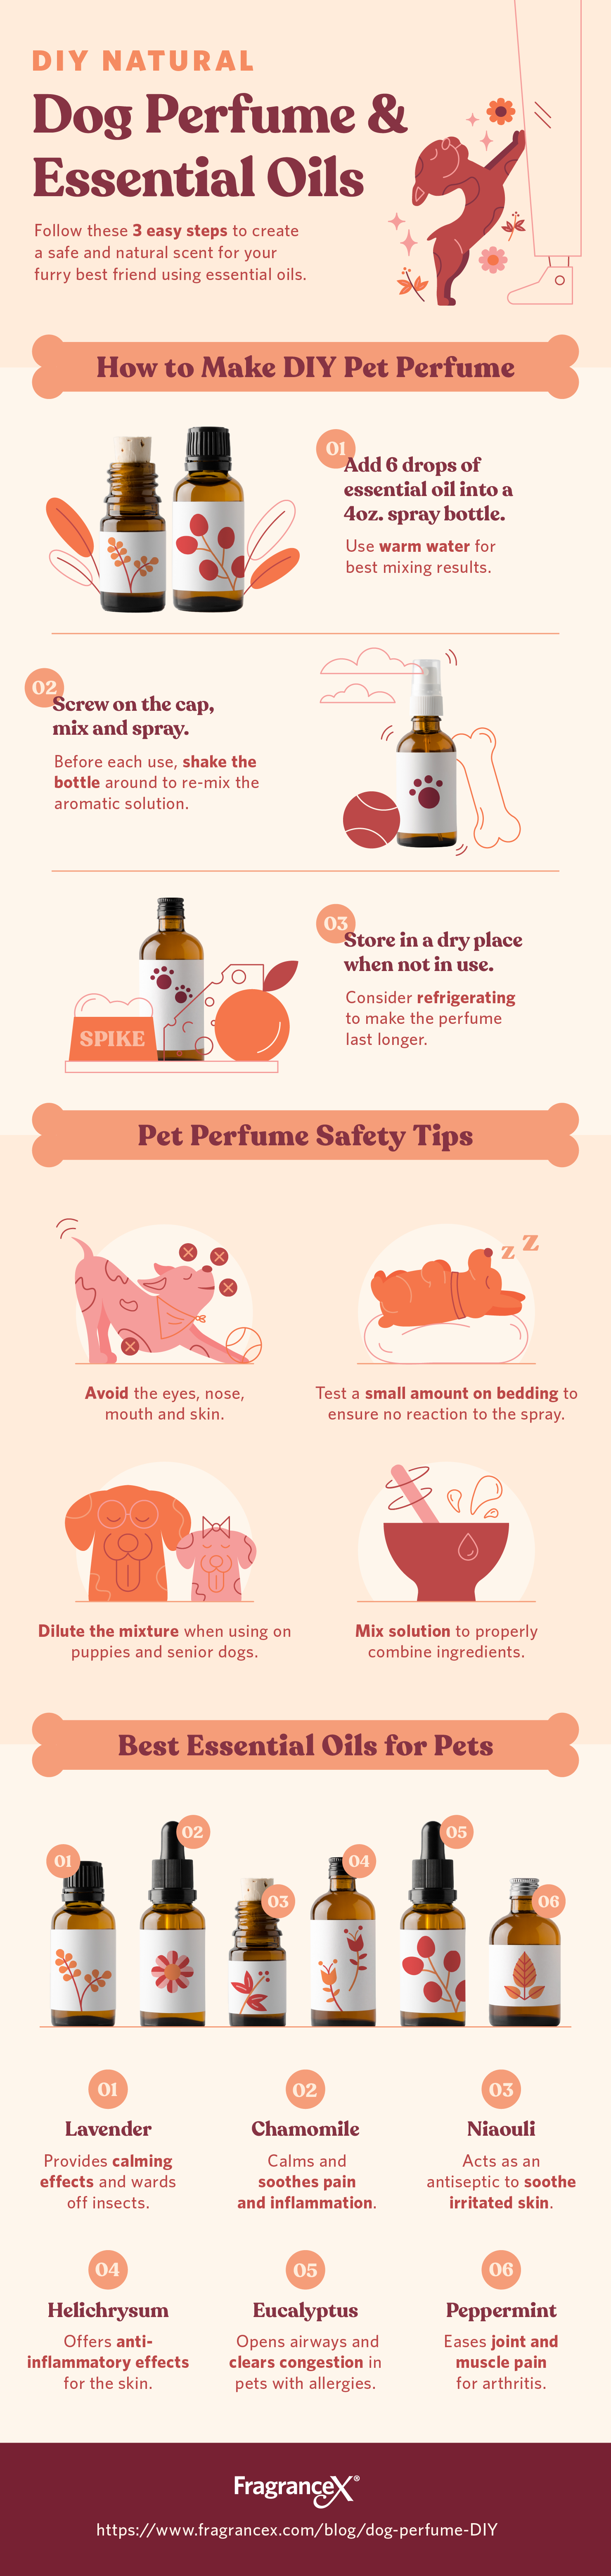 DIY Natural: Dog Perfume & Essential Oils - Infographic